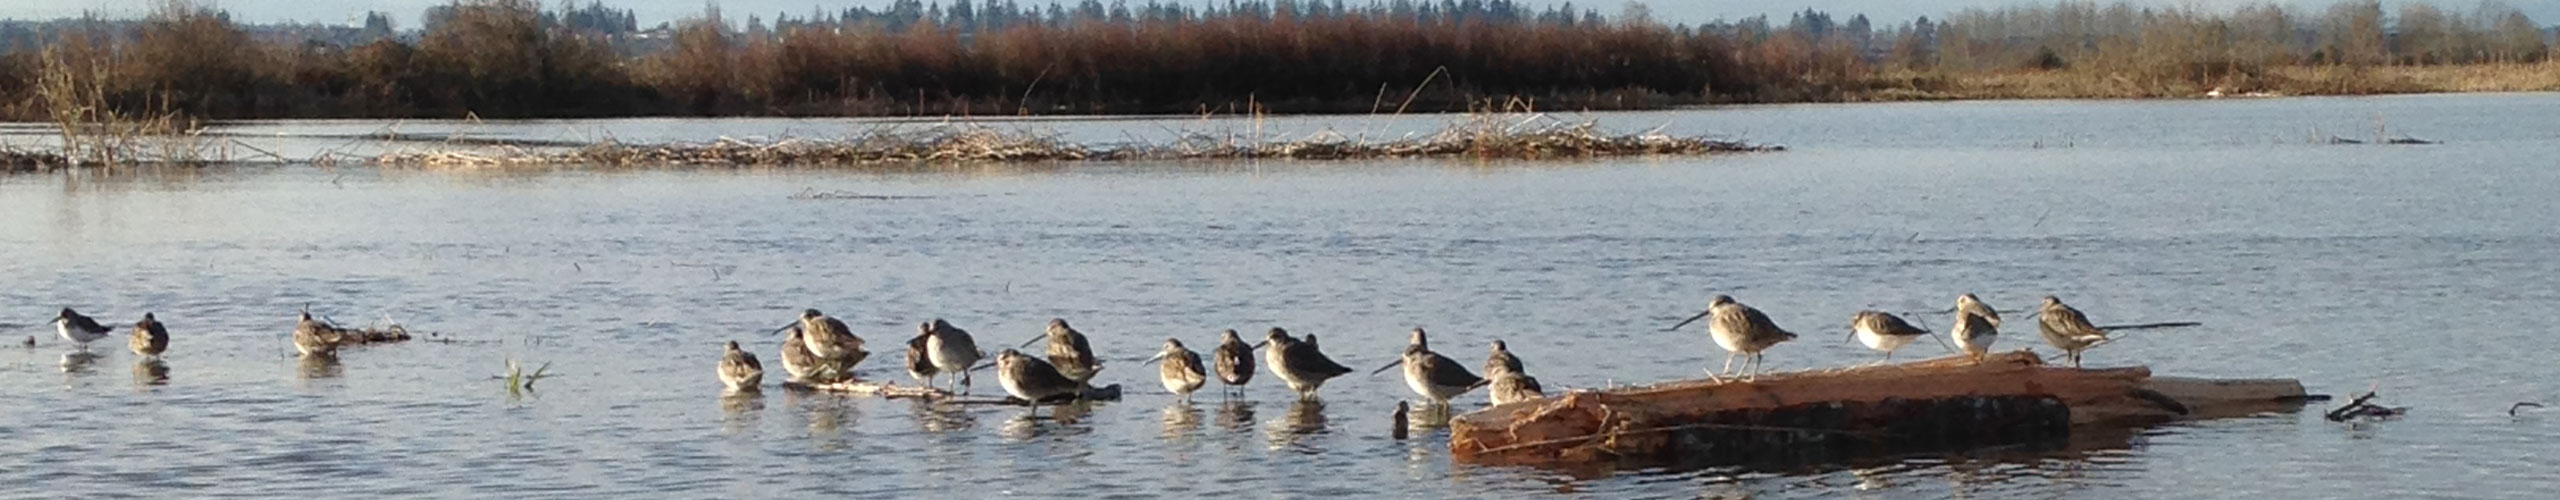 Tulalip Natural Resources Department close up image of shorebirds in nearby restored habitat